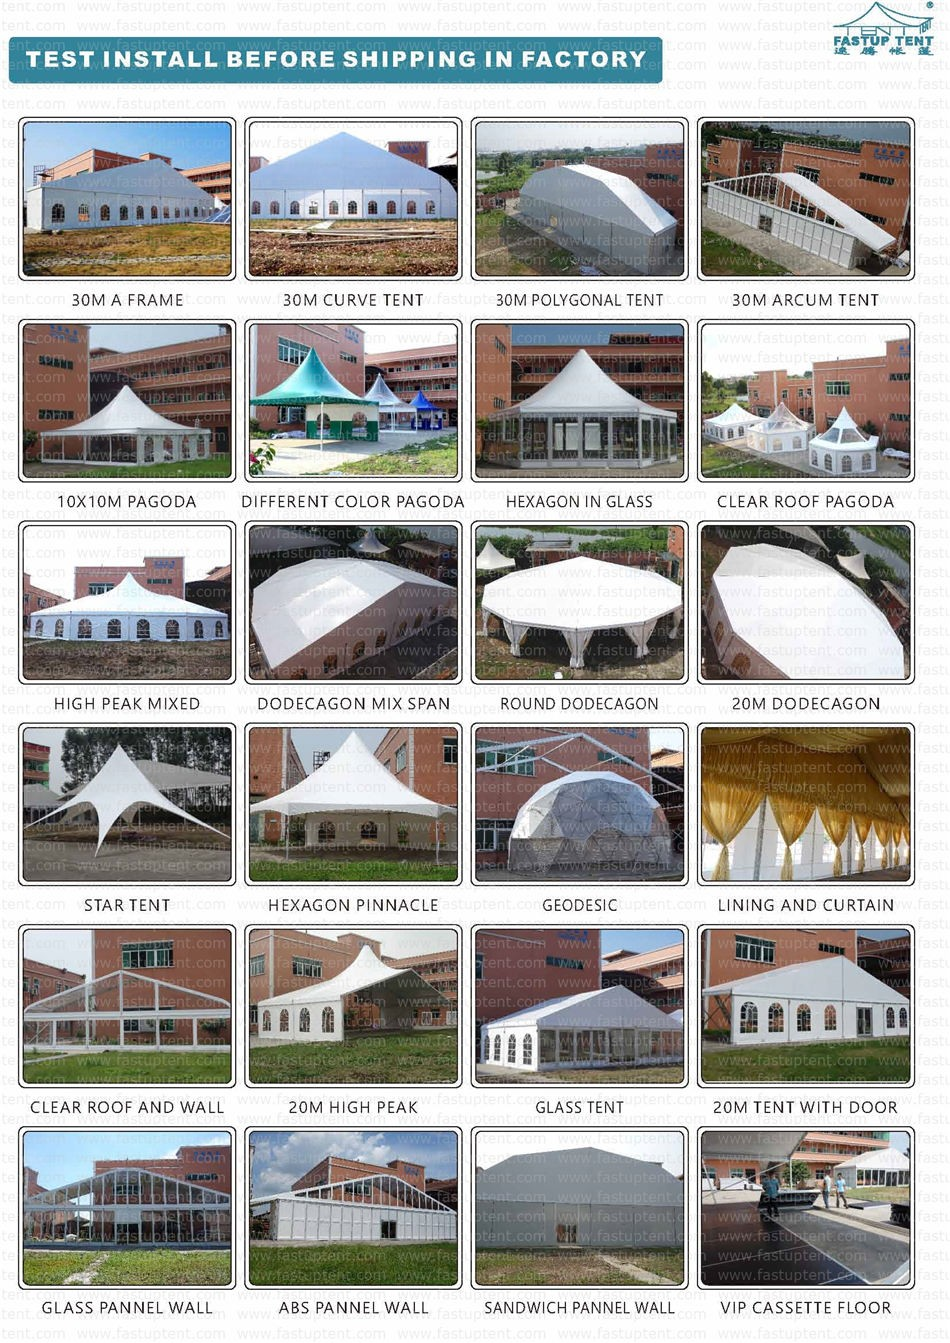 Outdoor Event Marquee Tent With Lining Drapes Air